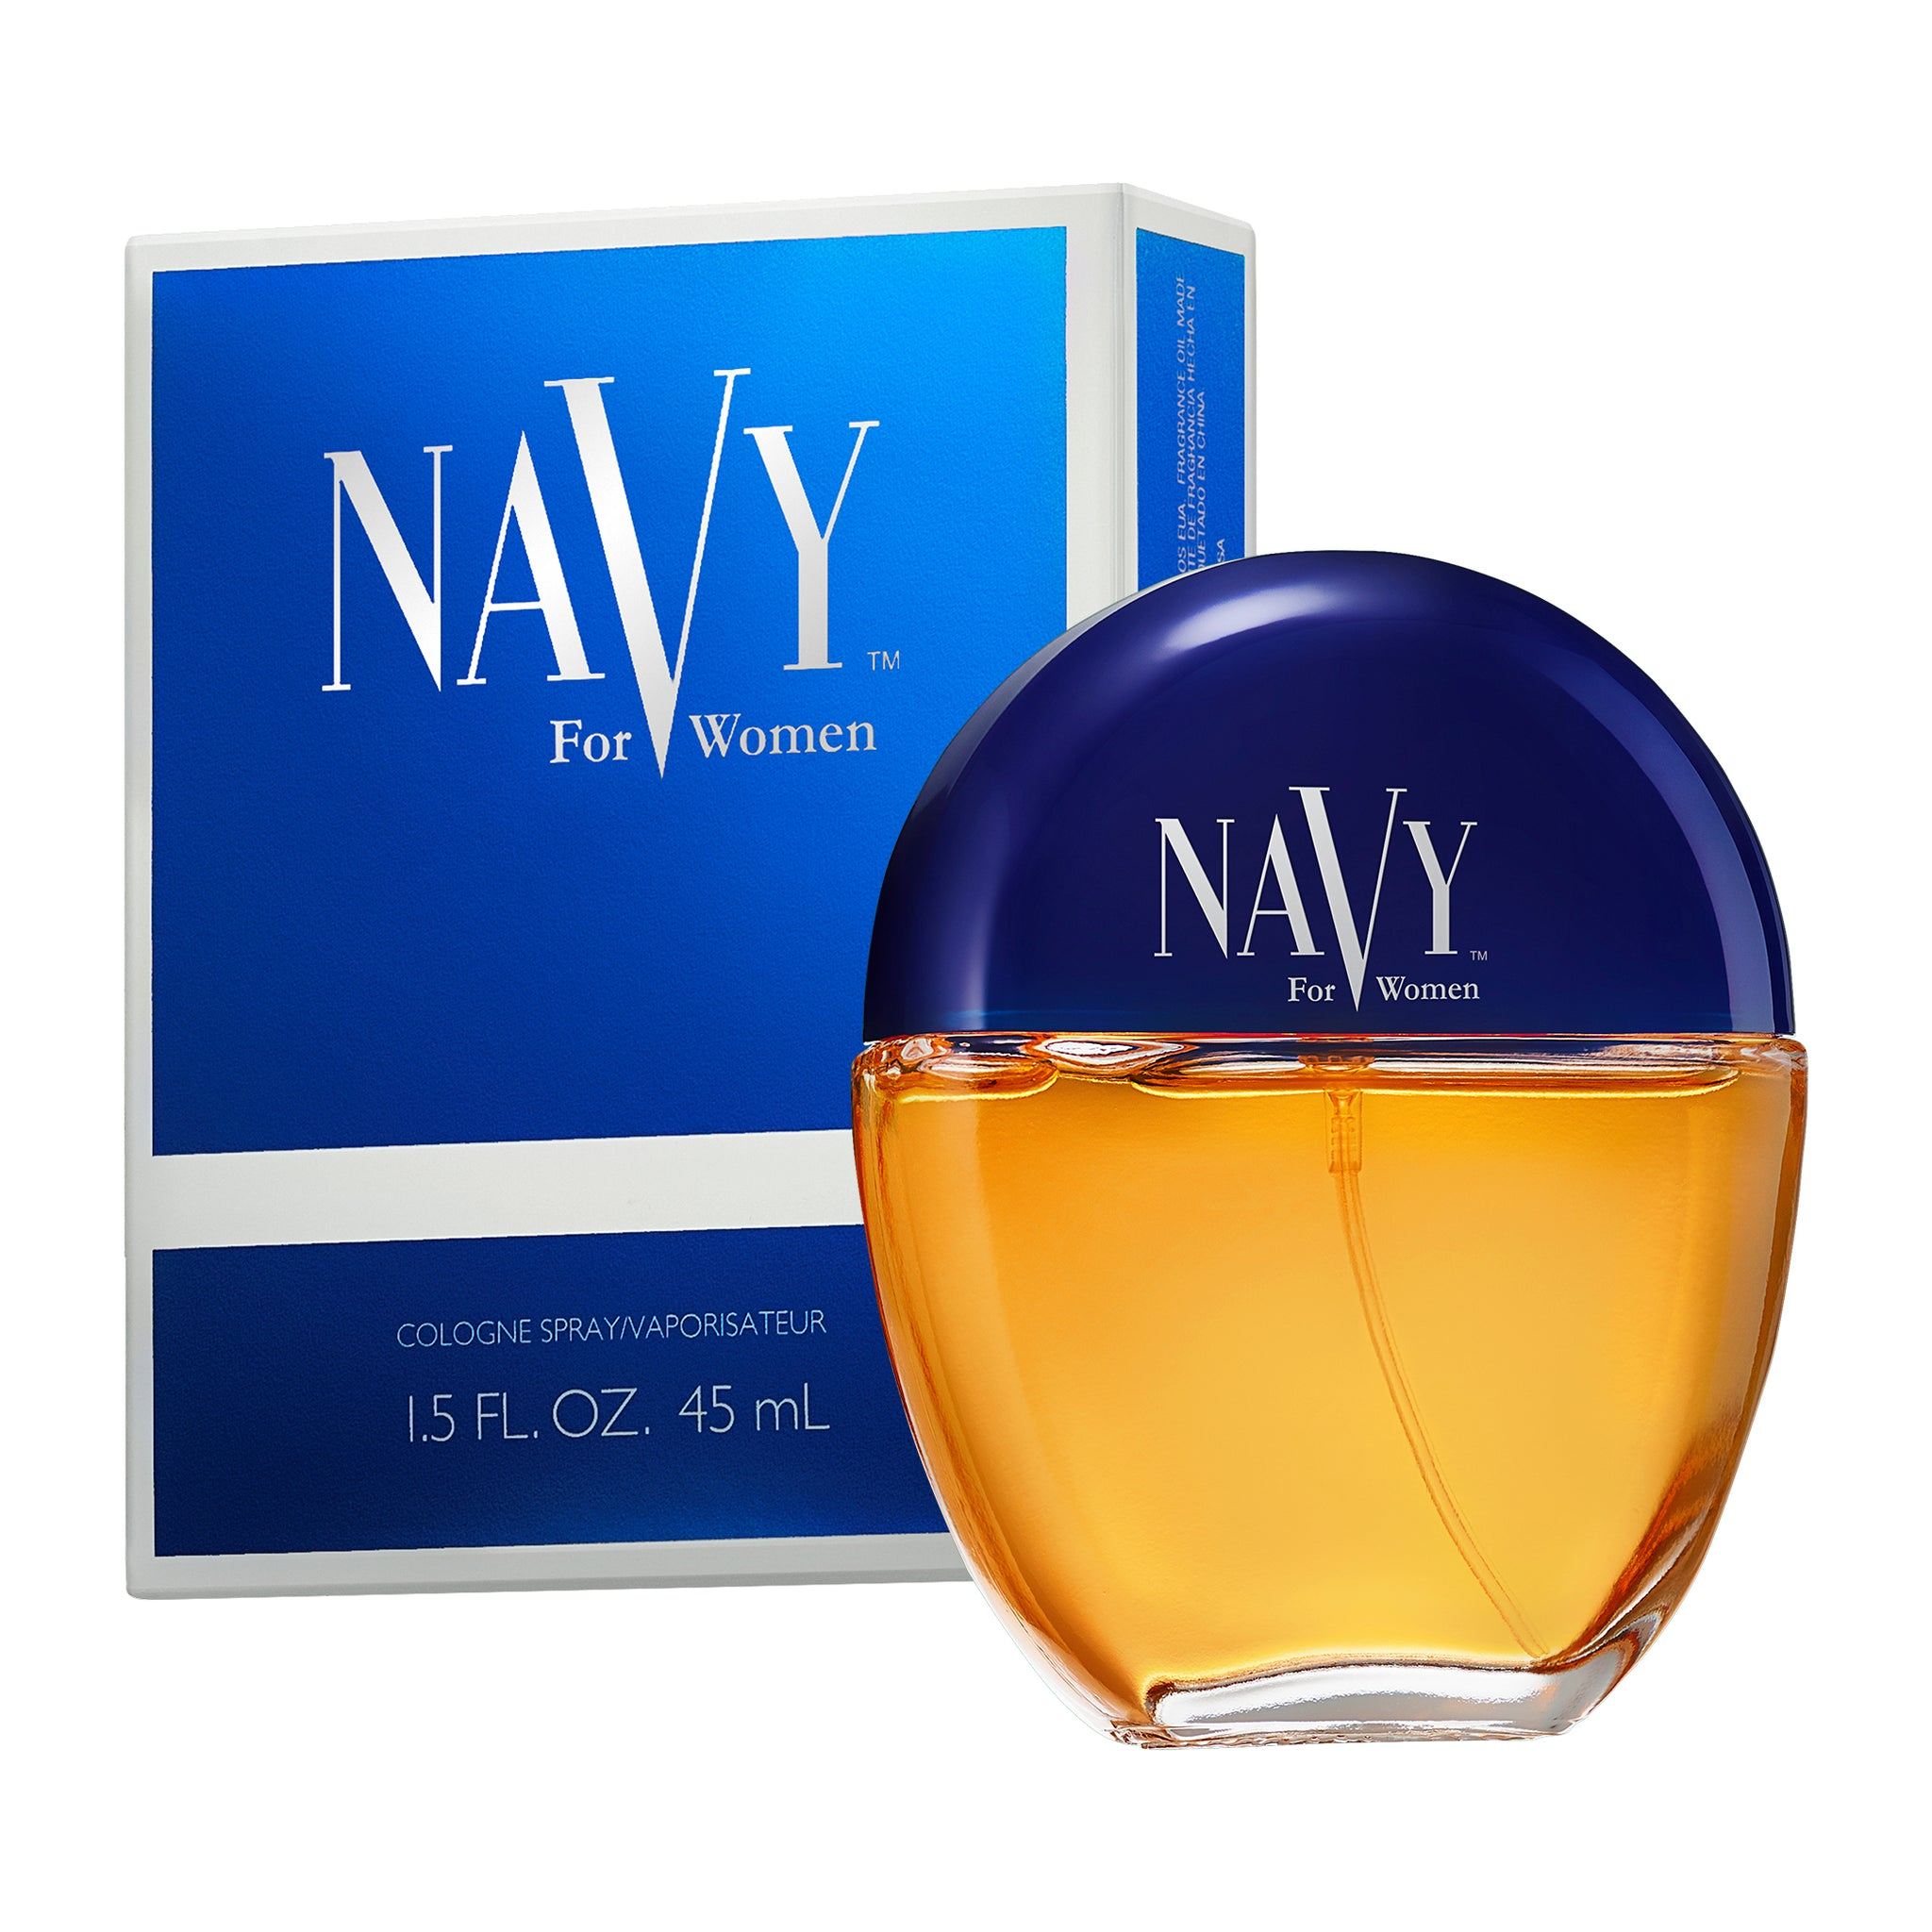 NAVY FOR WOMEN COLOGNE SPRAY <br> 1.5 FL OZ / 45 ML